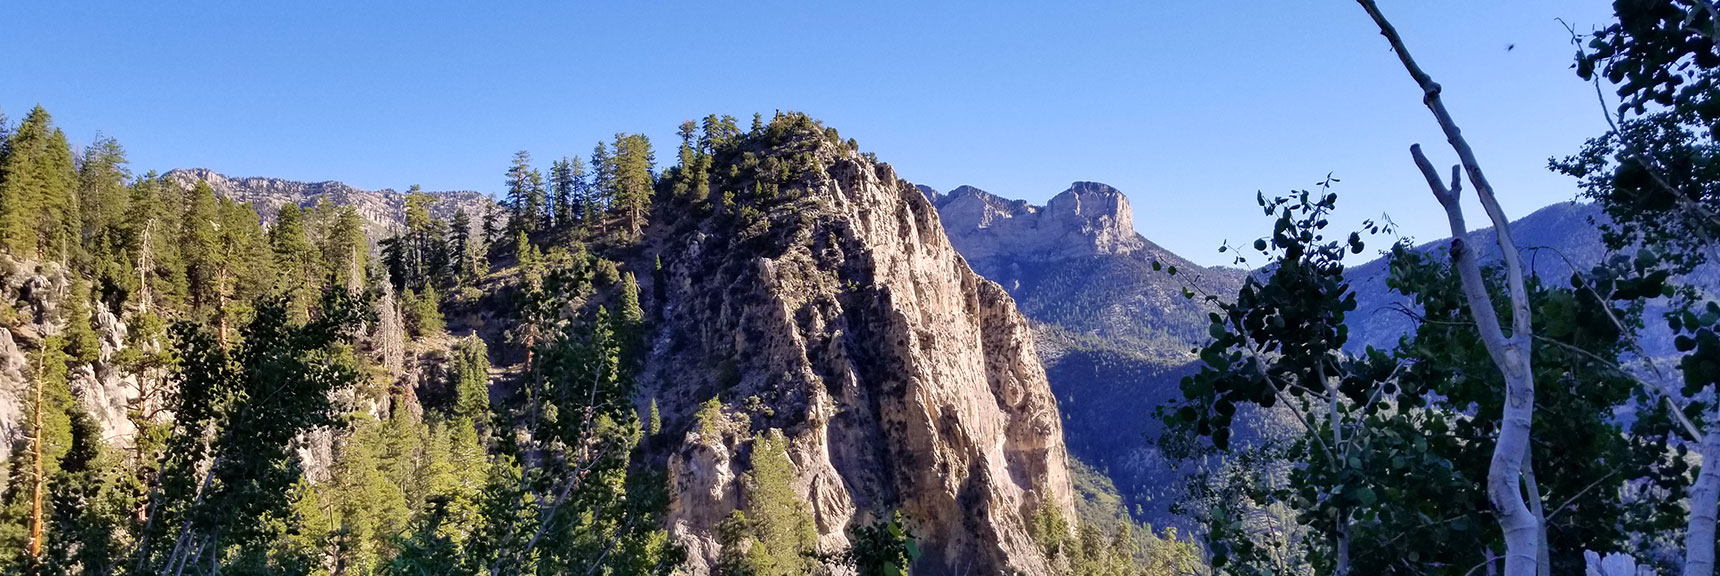 Cathedral Rock Viewed from Behind (South), Mt. Charleston Wilderness, Nevada